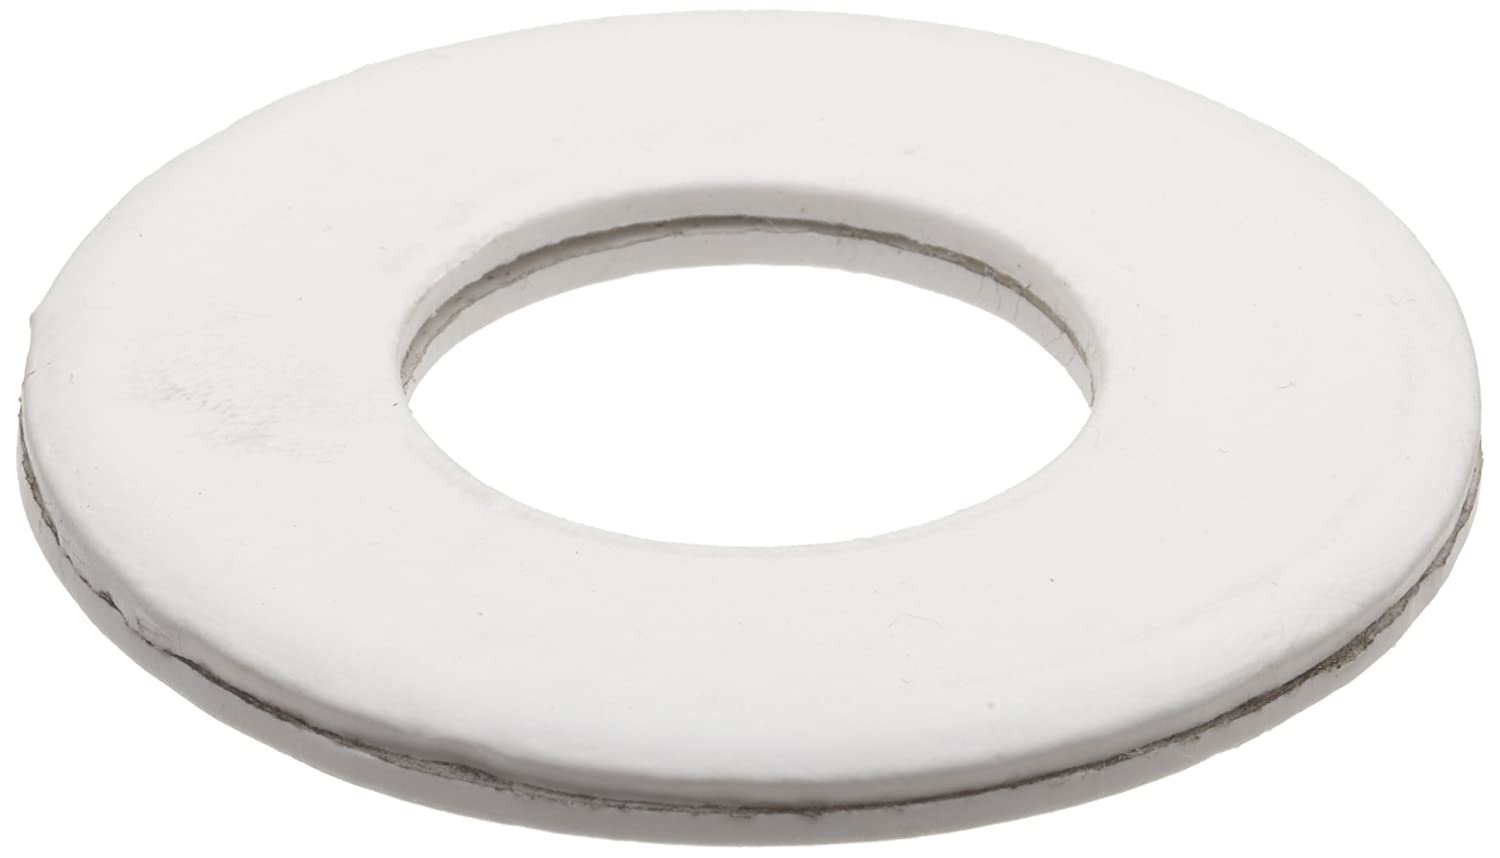 Ring Fits Class 150 Flange PTFE with Stainless Steel Insert Flange Gasket White 2-1//4 OD 3//4 Pipe Size 1//8 Thick Pack of 1 3//4 ID